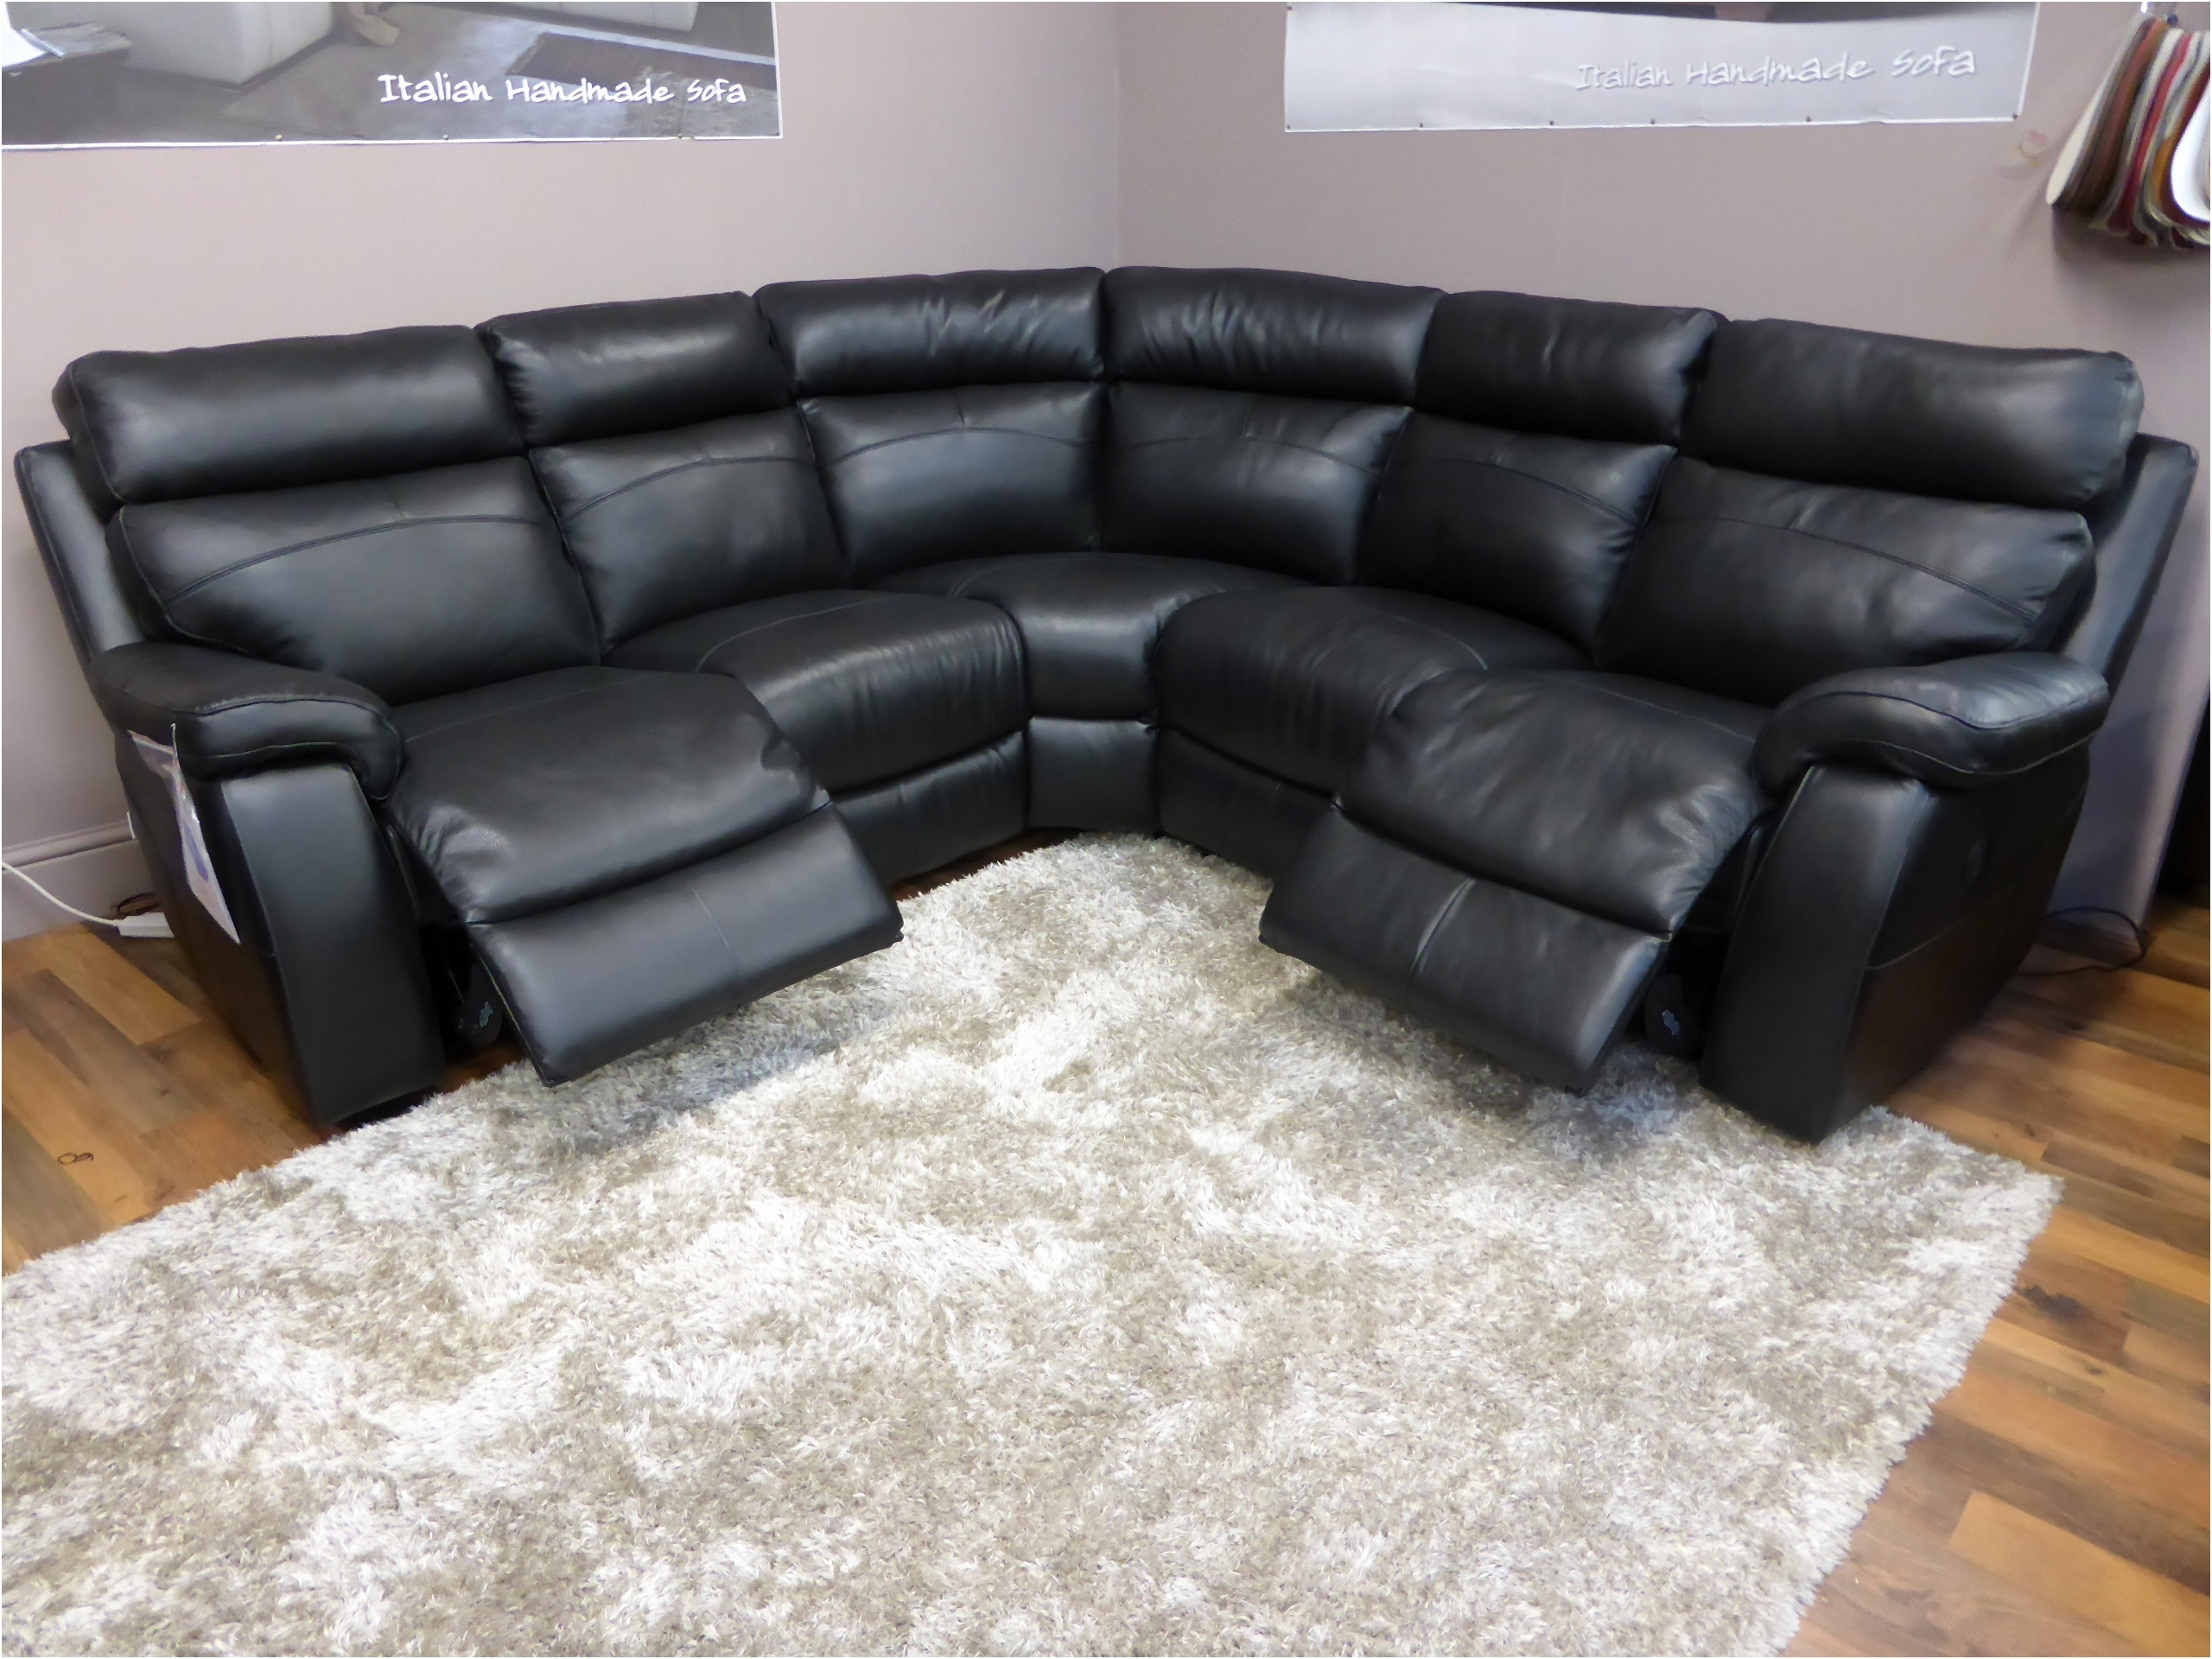 Beautiful Lazy Boy Sectional Sofas Inspirational – Uboxy intended for Sectional Sofas at Lazy Boy (Image 4 of 15)